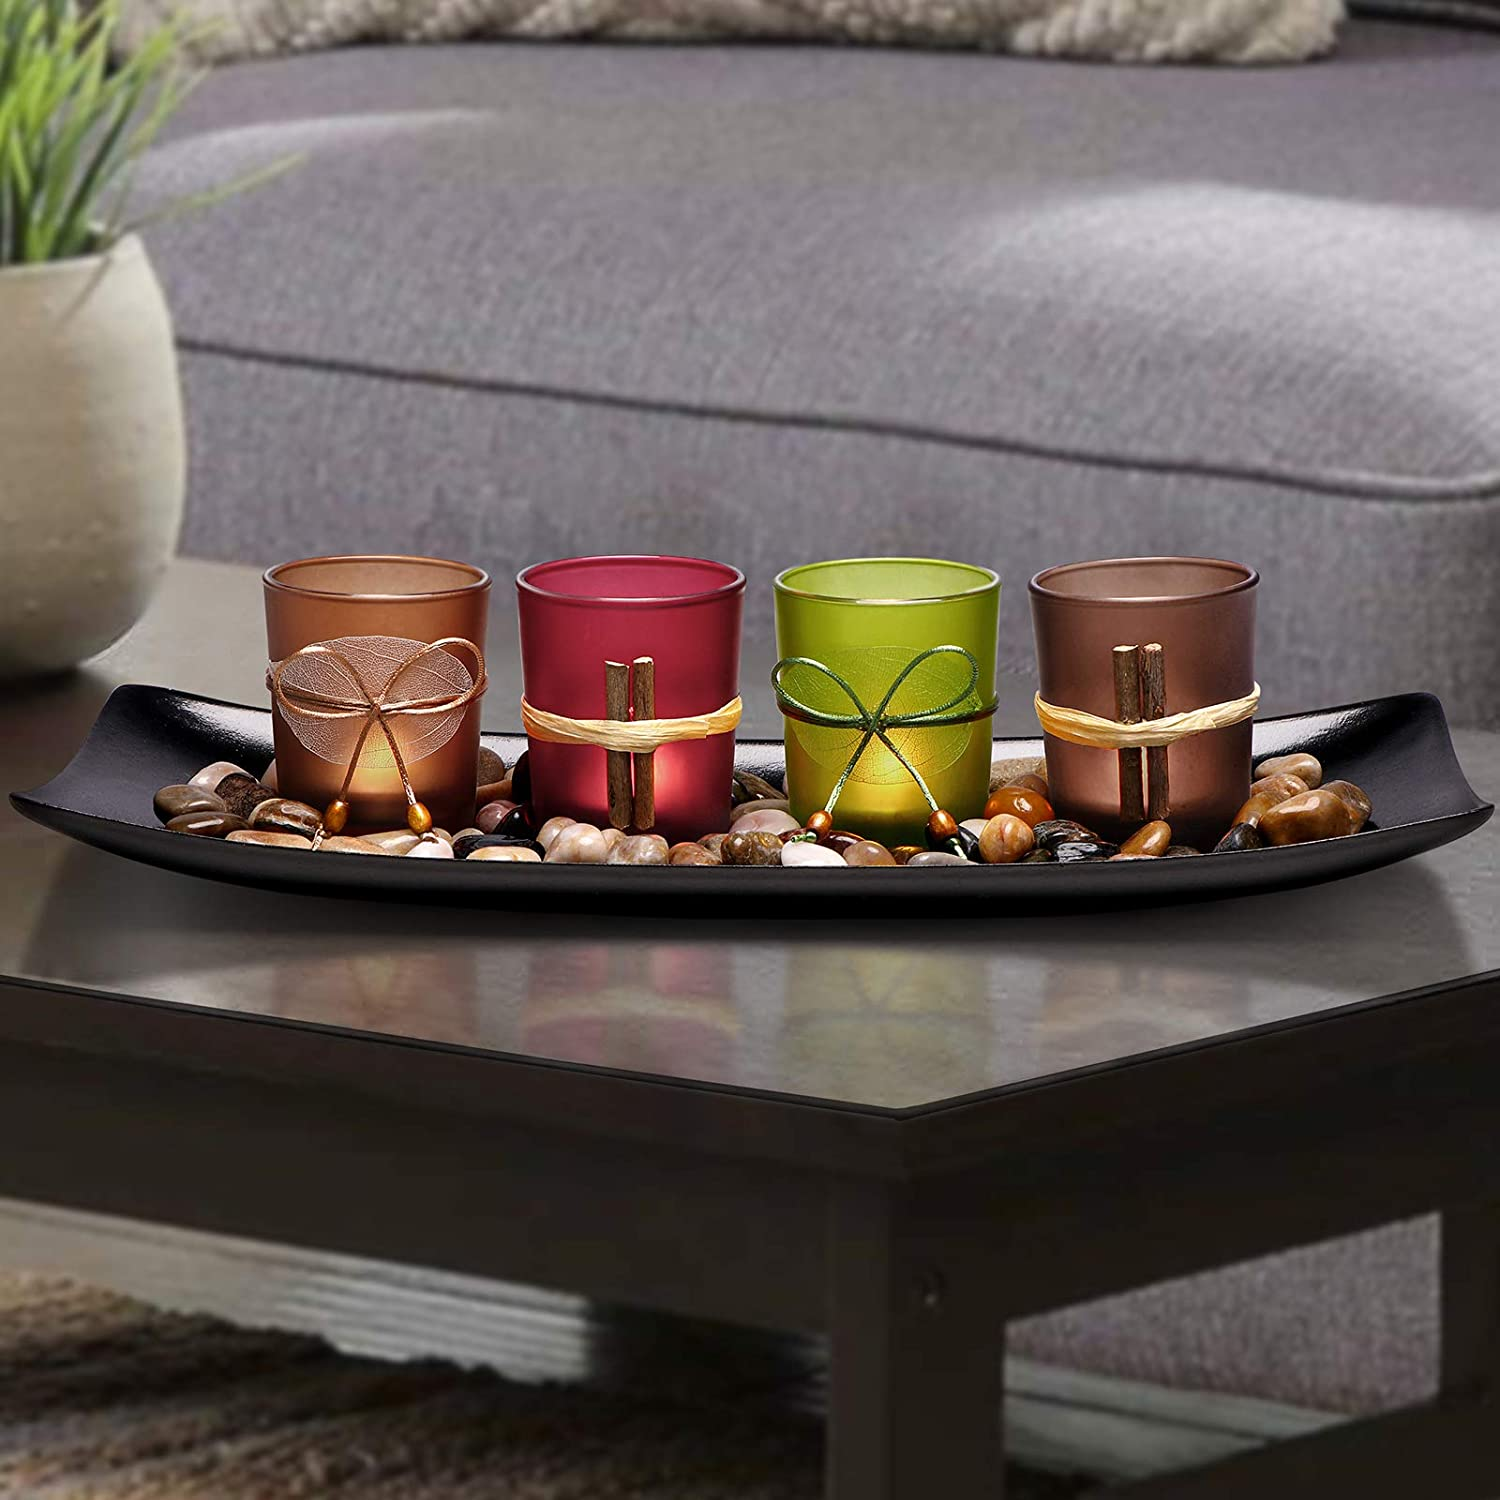 Lamorgift Home Decor Candle Holders Set For Bathroom Decorations Candle Holder Centerpieces For Dining Room Table Living Room Decor Coffee Fox River Deals